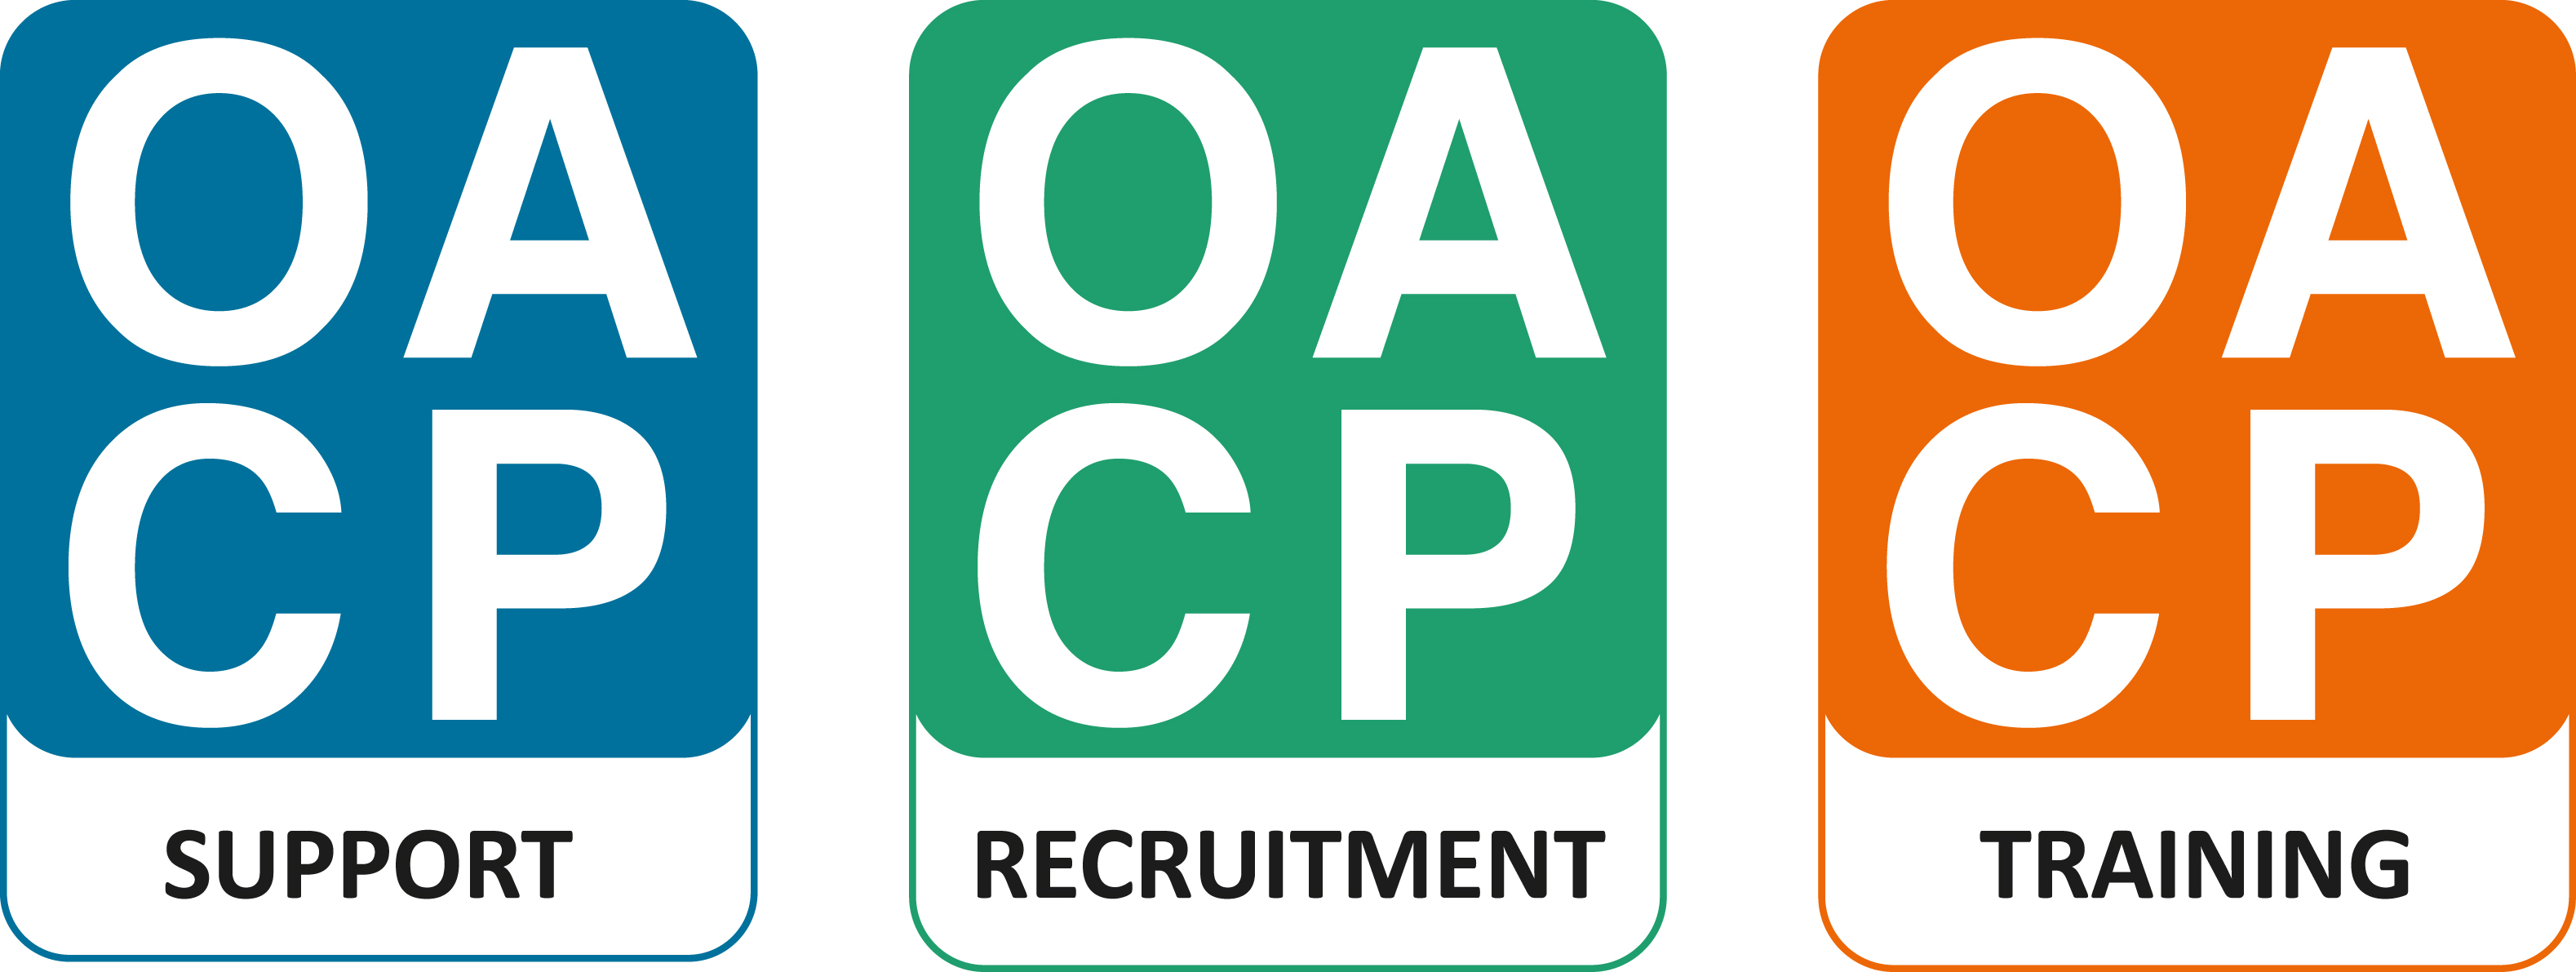 Oxfordshire Association of Care Providers triple logo